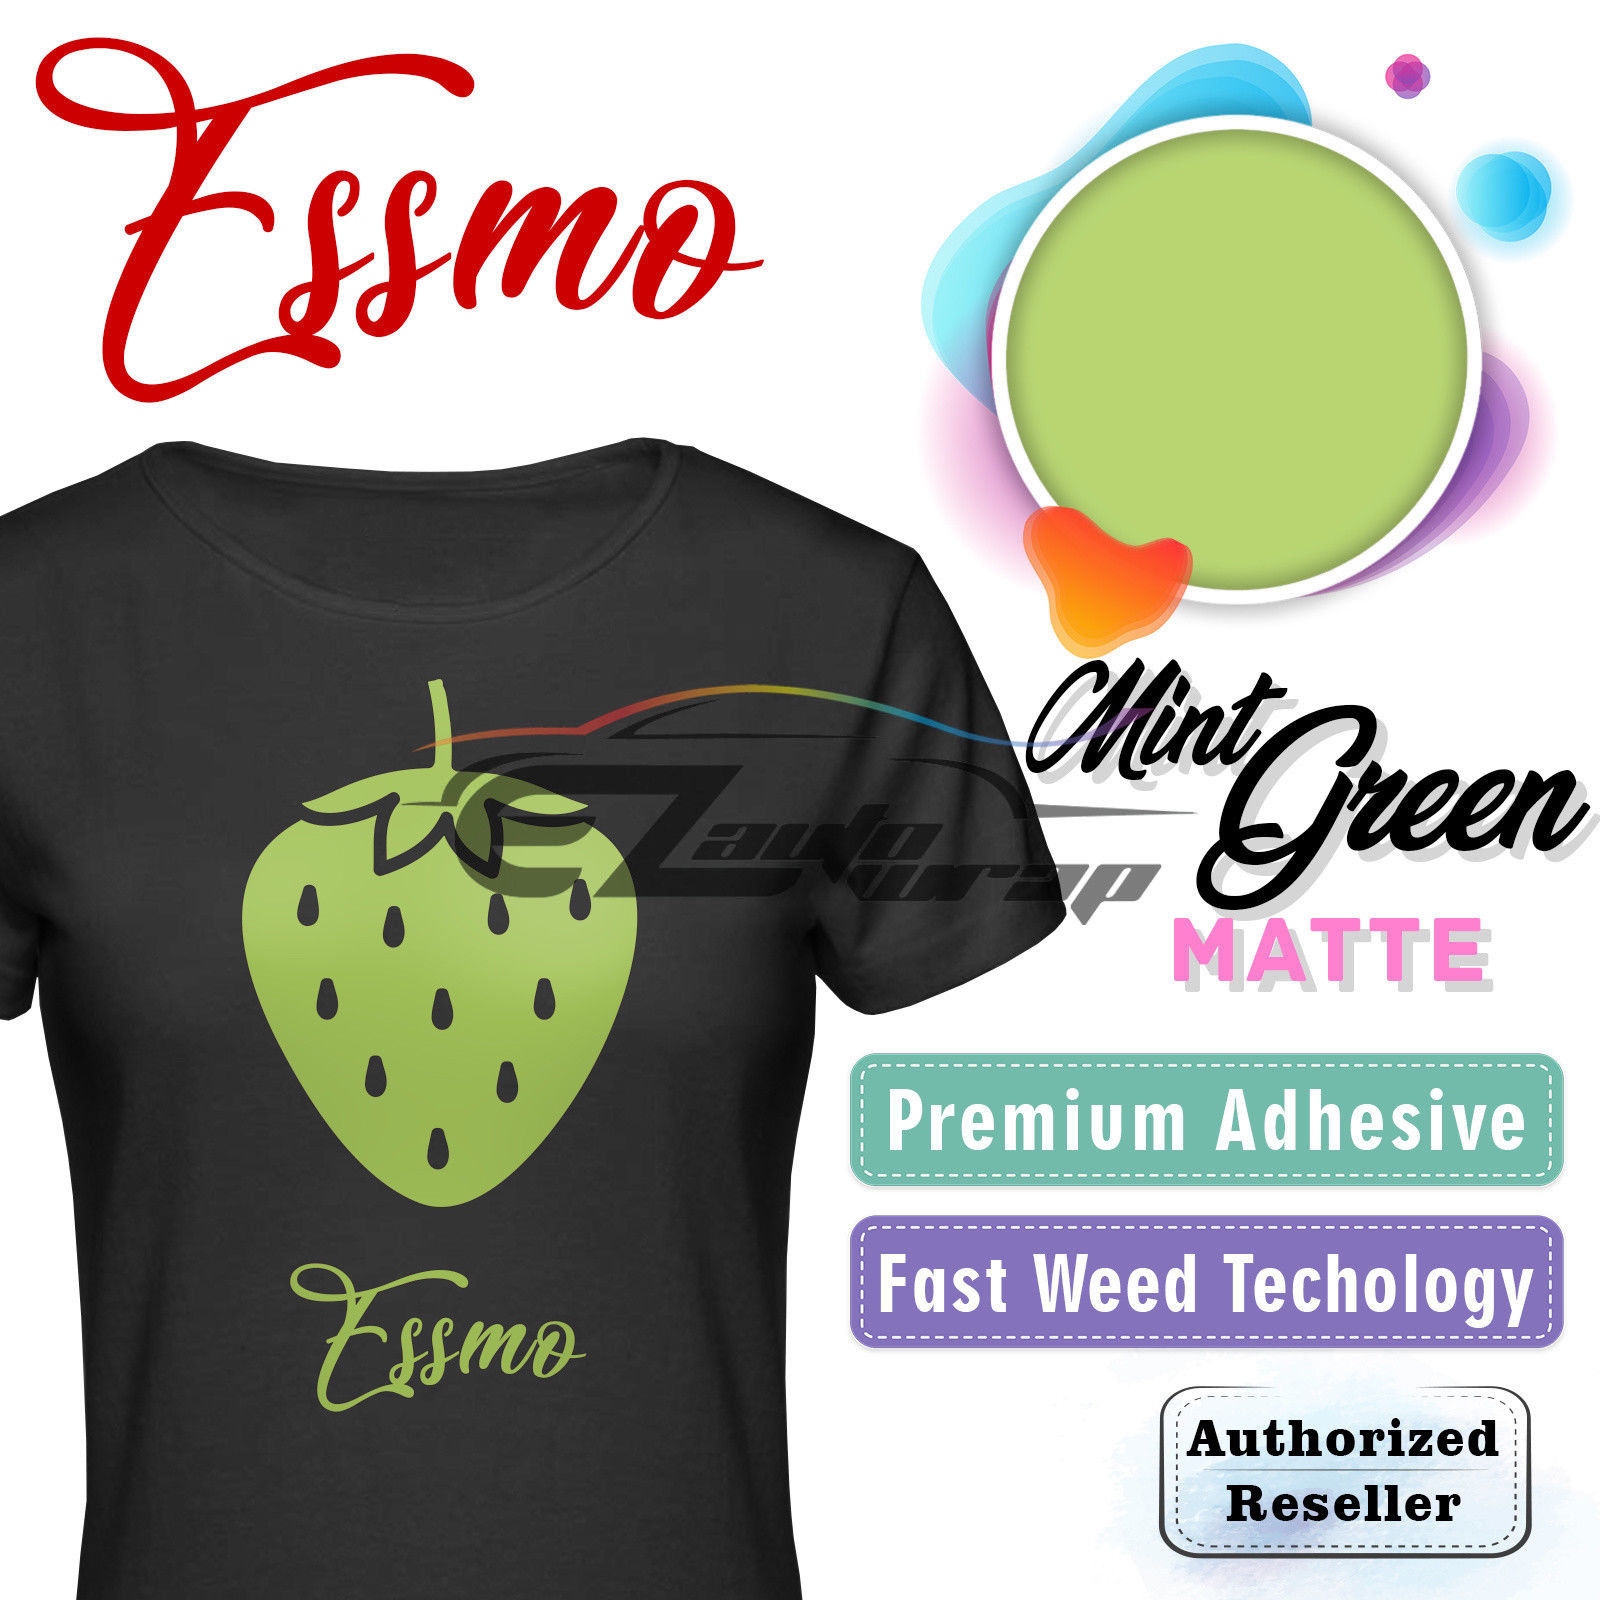 "ESSMO Mint Green Matte Solid Heat Transfer Vinyl HTV Sheet T-Shirt 20"" Wide Iron On Heat Press 20""x48"""